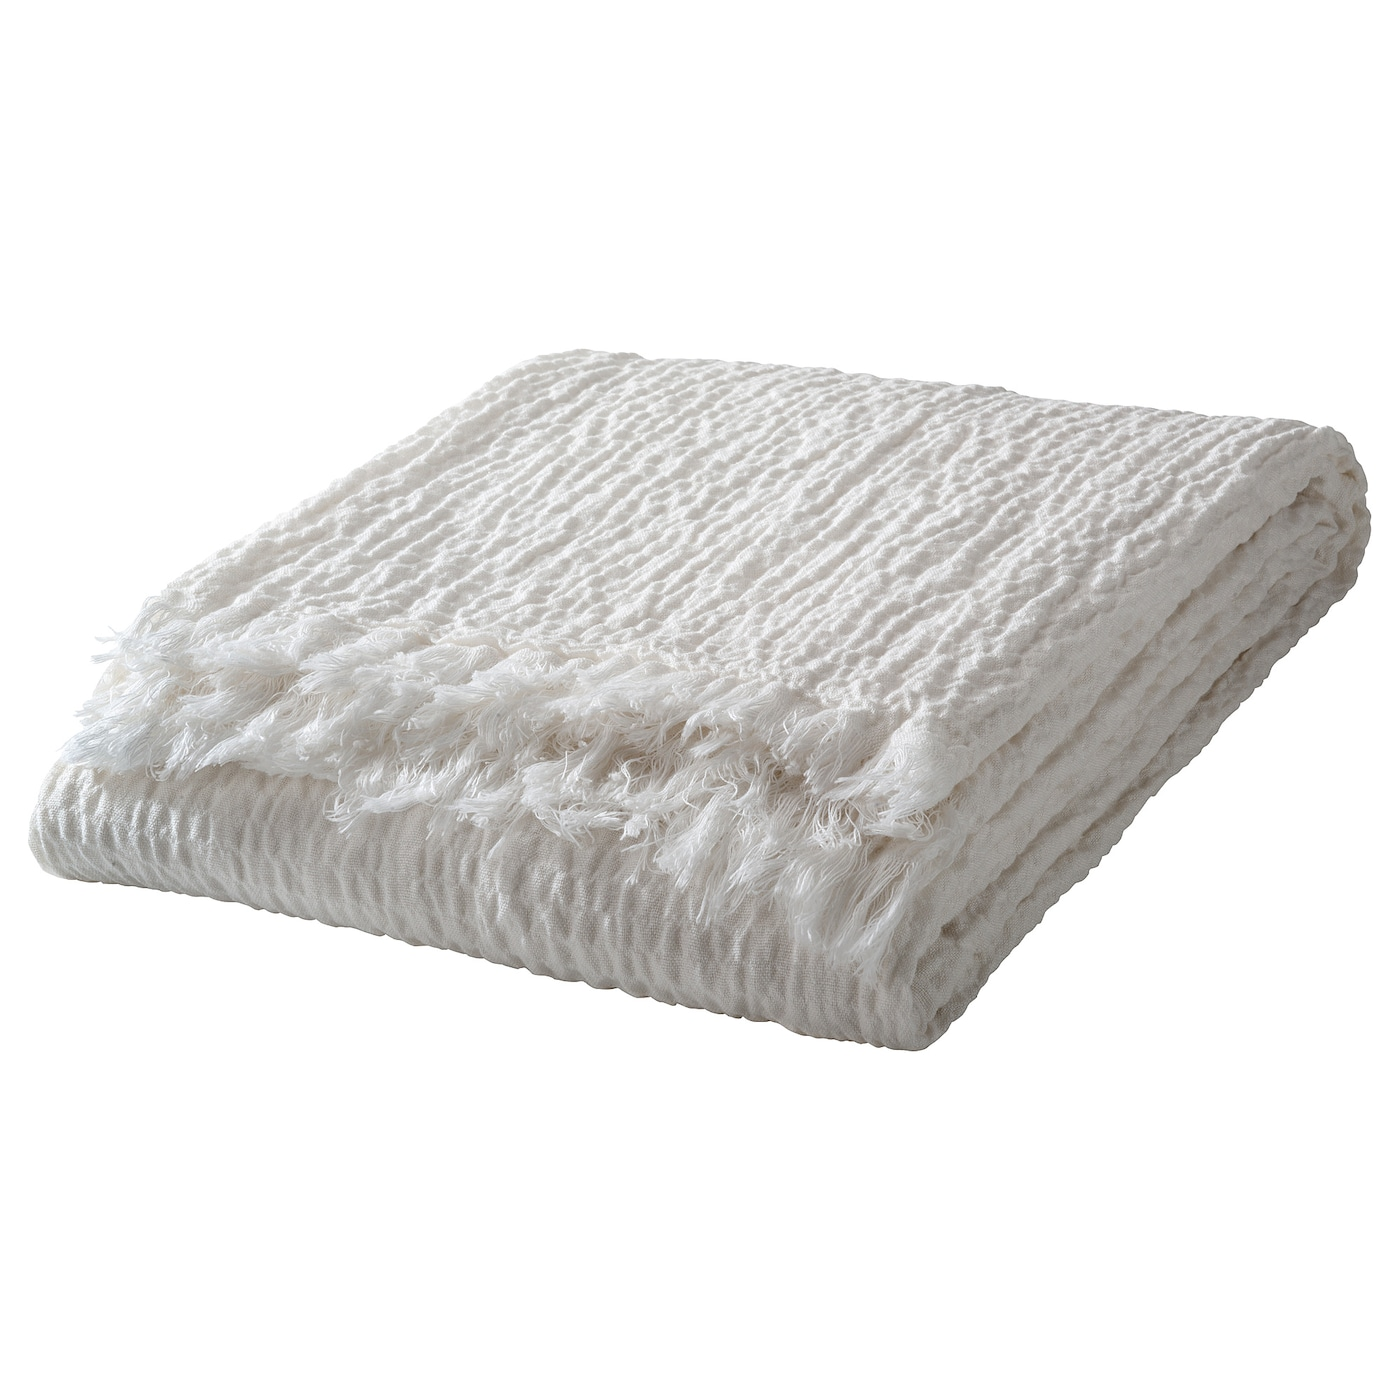 IKEA KANADALILJA bedspread Can be used as bedspread for a single bed or as a large blanket.